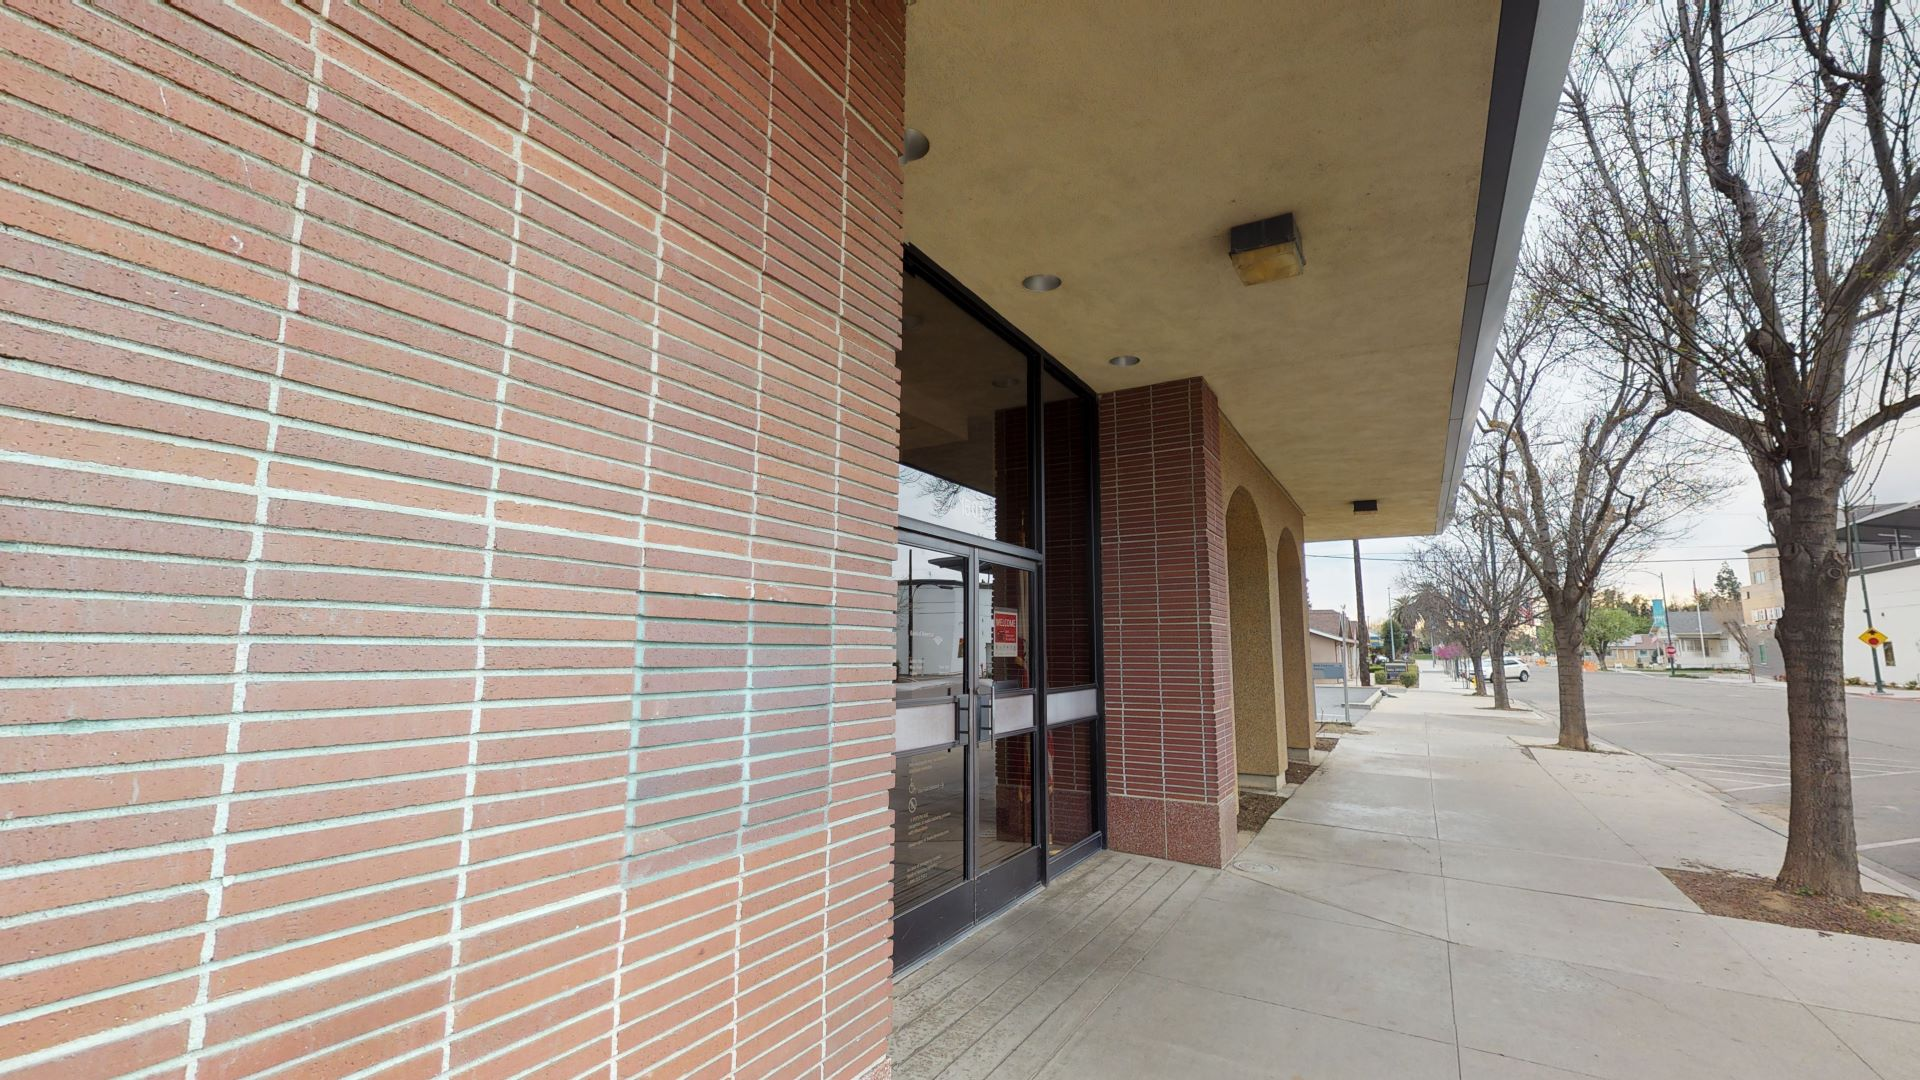 Bank of America financial center with walk-up ATM   1501 7th St, Sanger, CA 93657